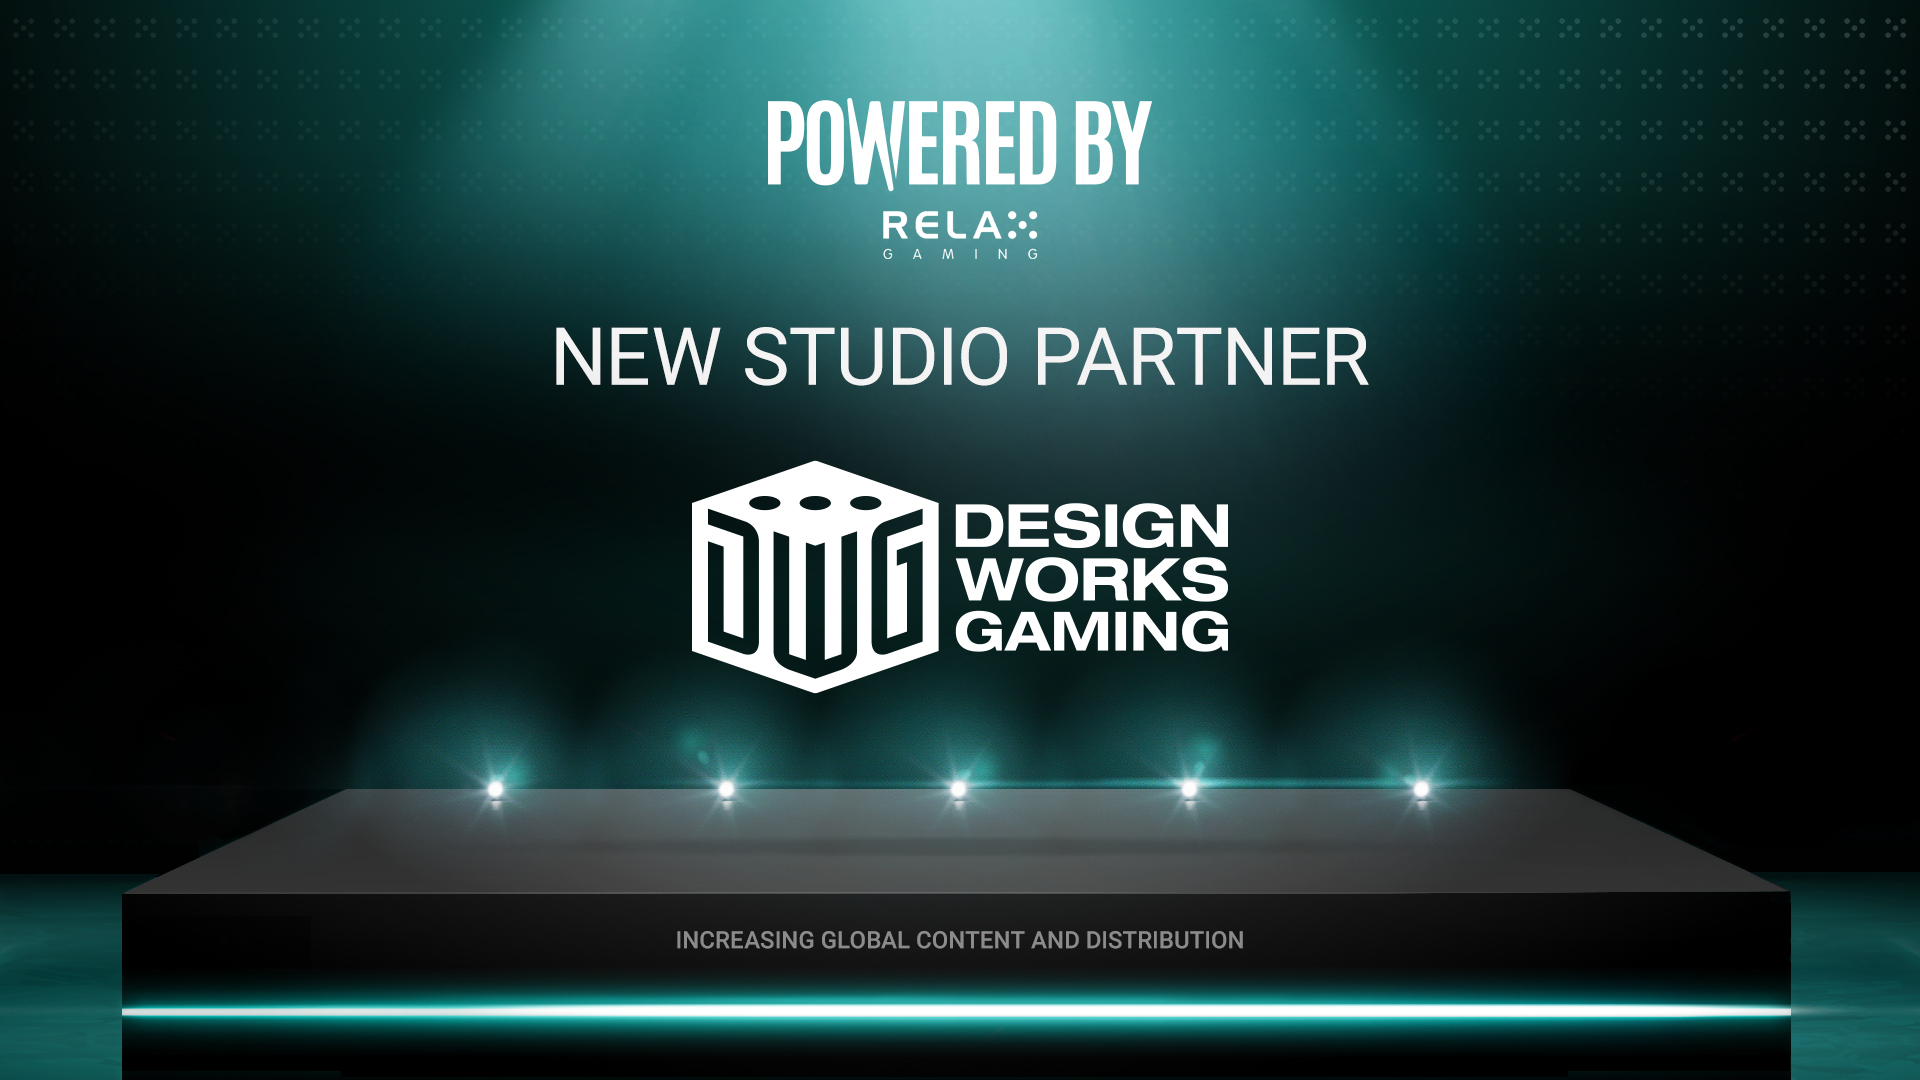 Design Works Gaming joins Relax Gaming's Powered By programme